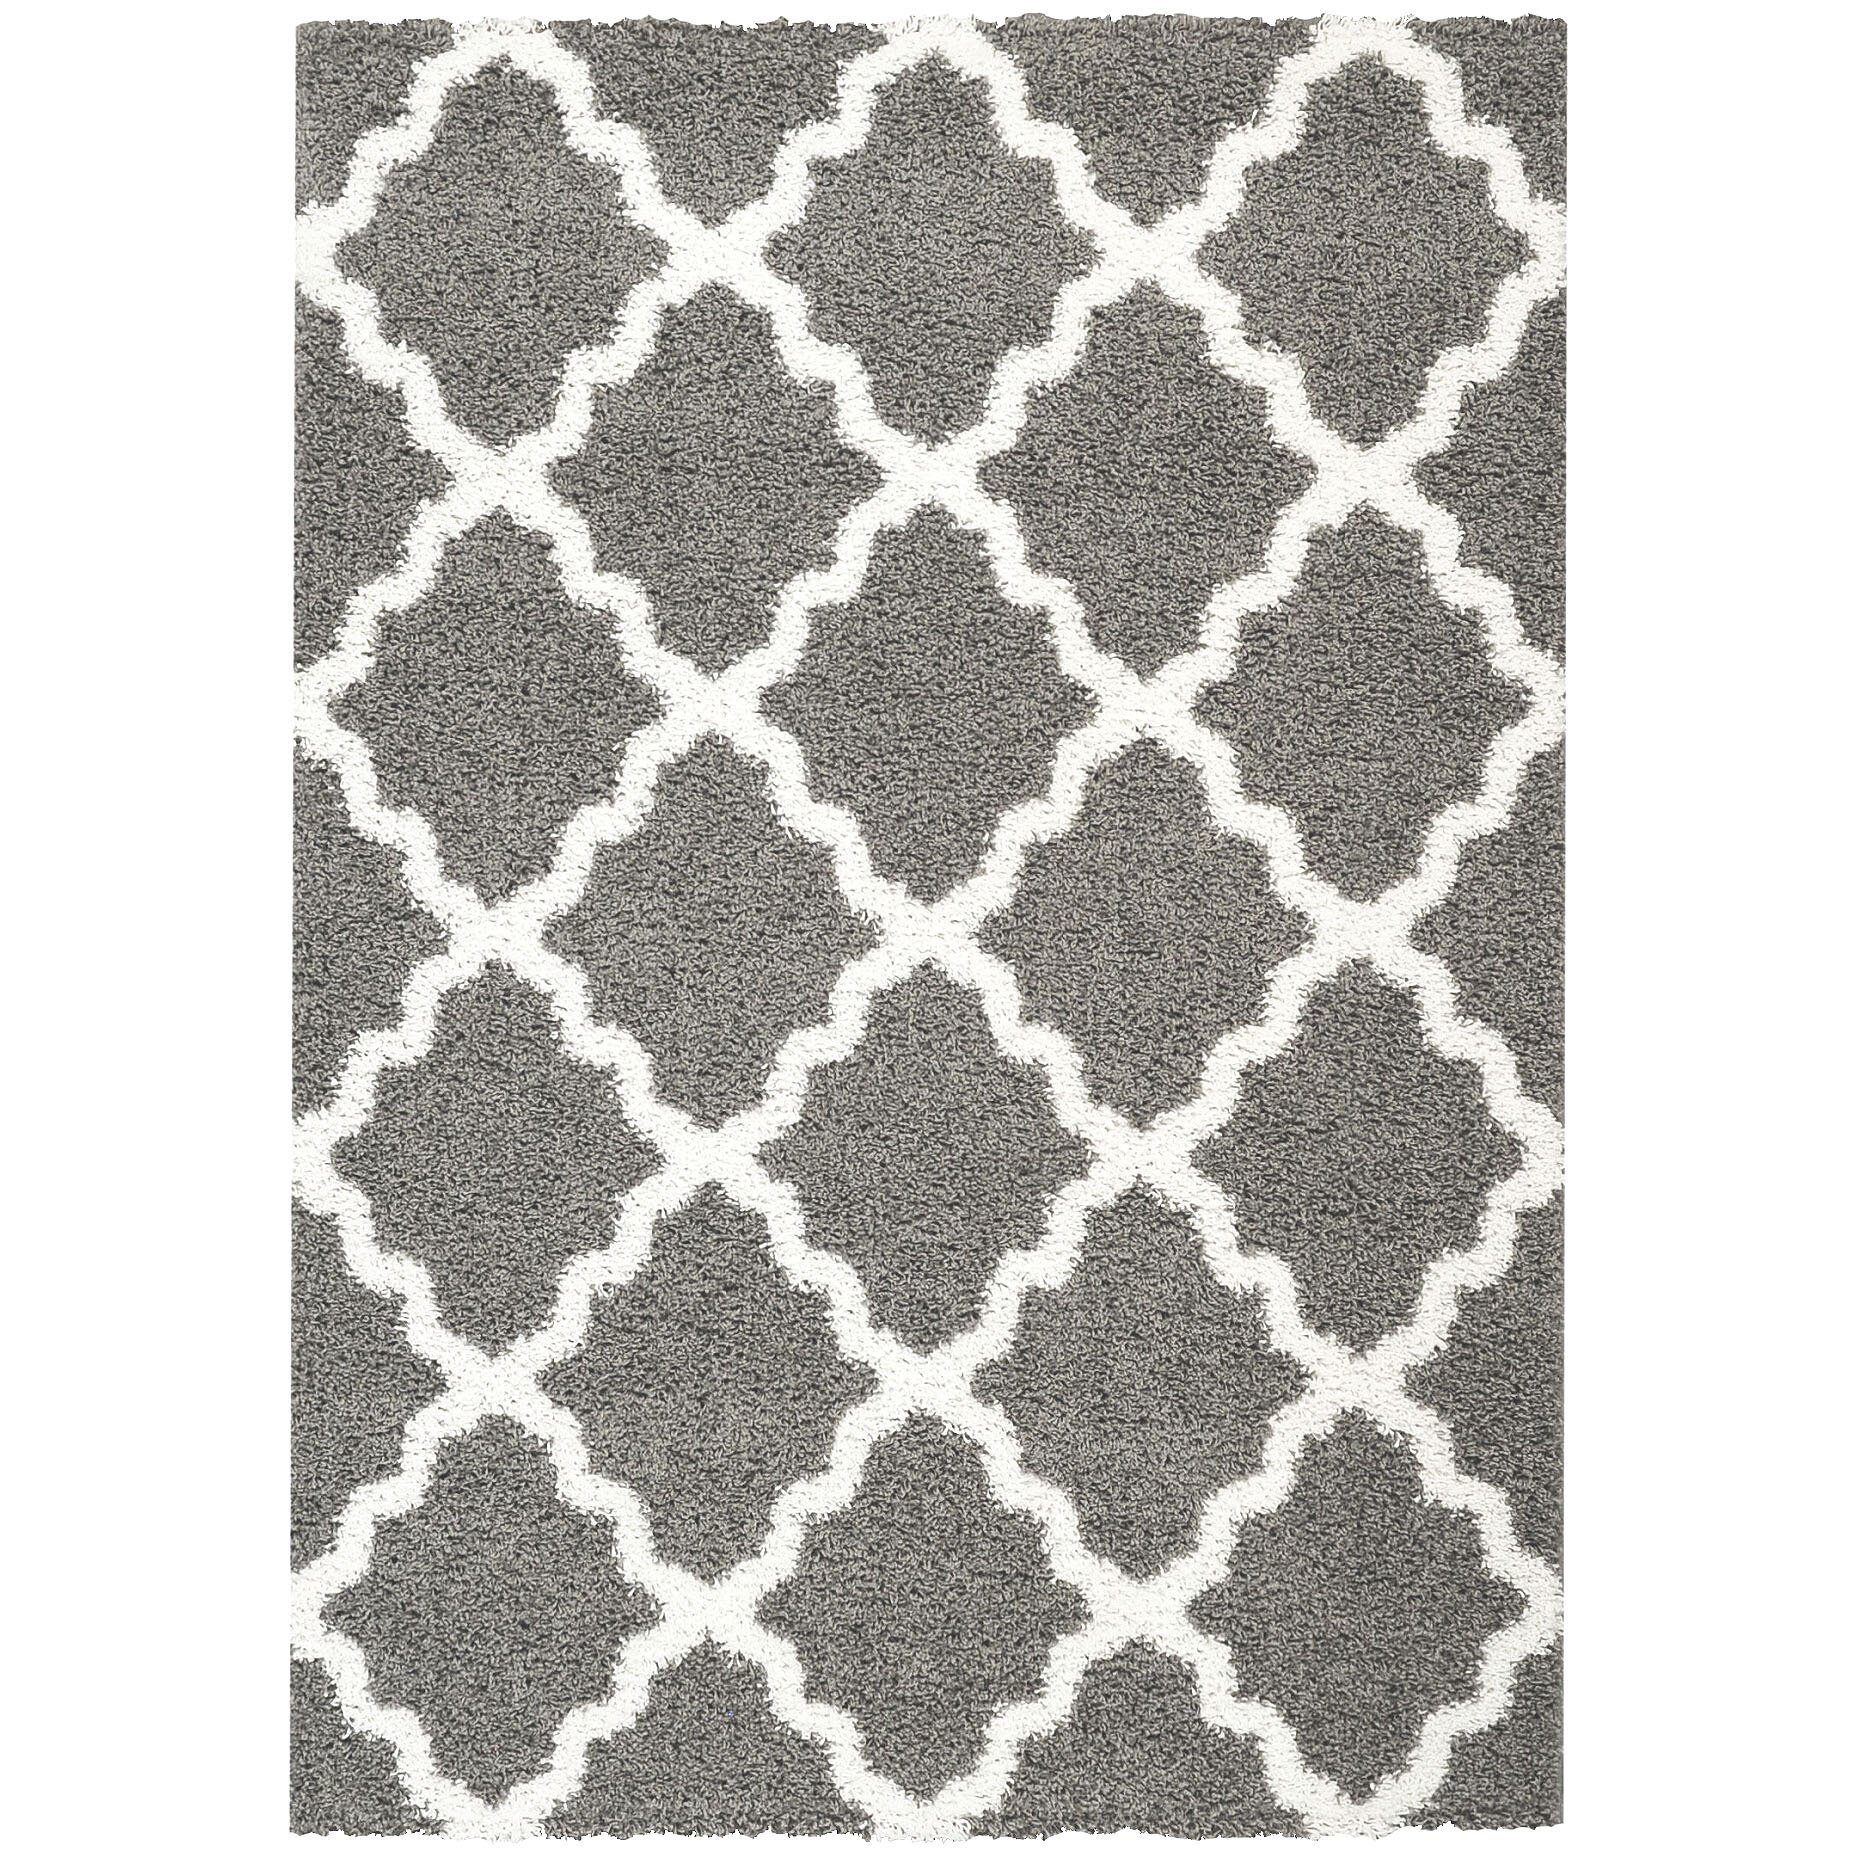 Rugnur Bella Maxy Home Moroccan Trellis Contemporary Gray